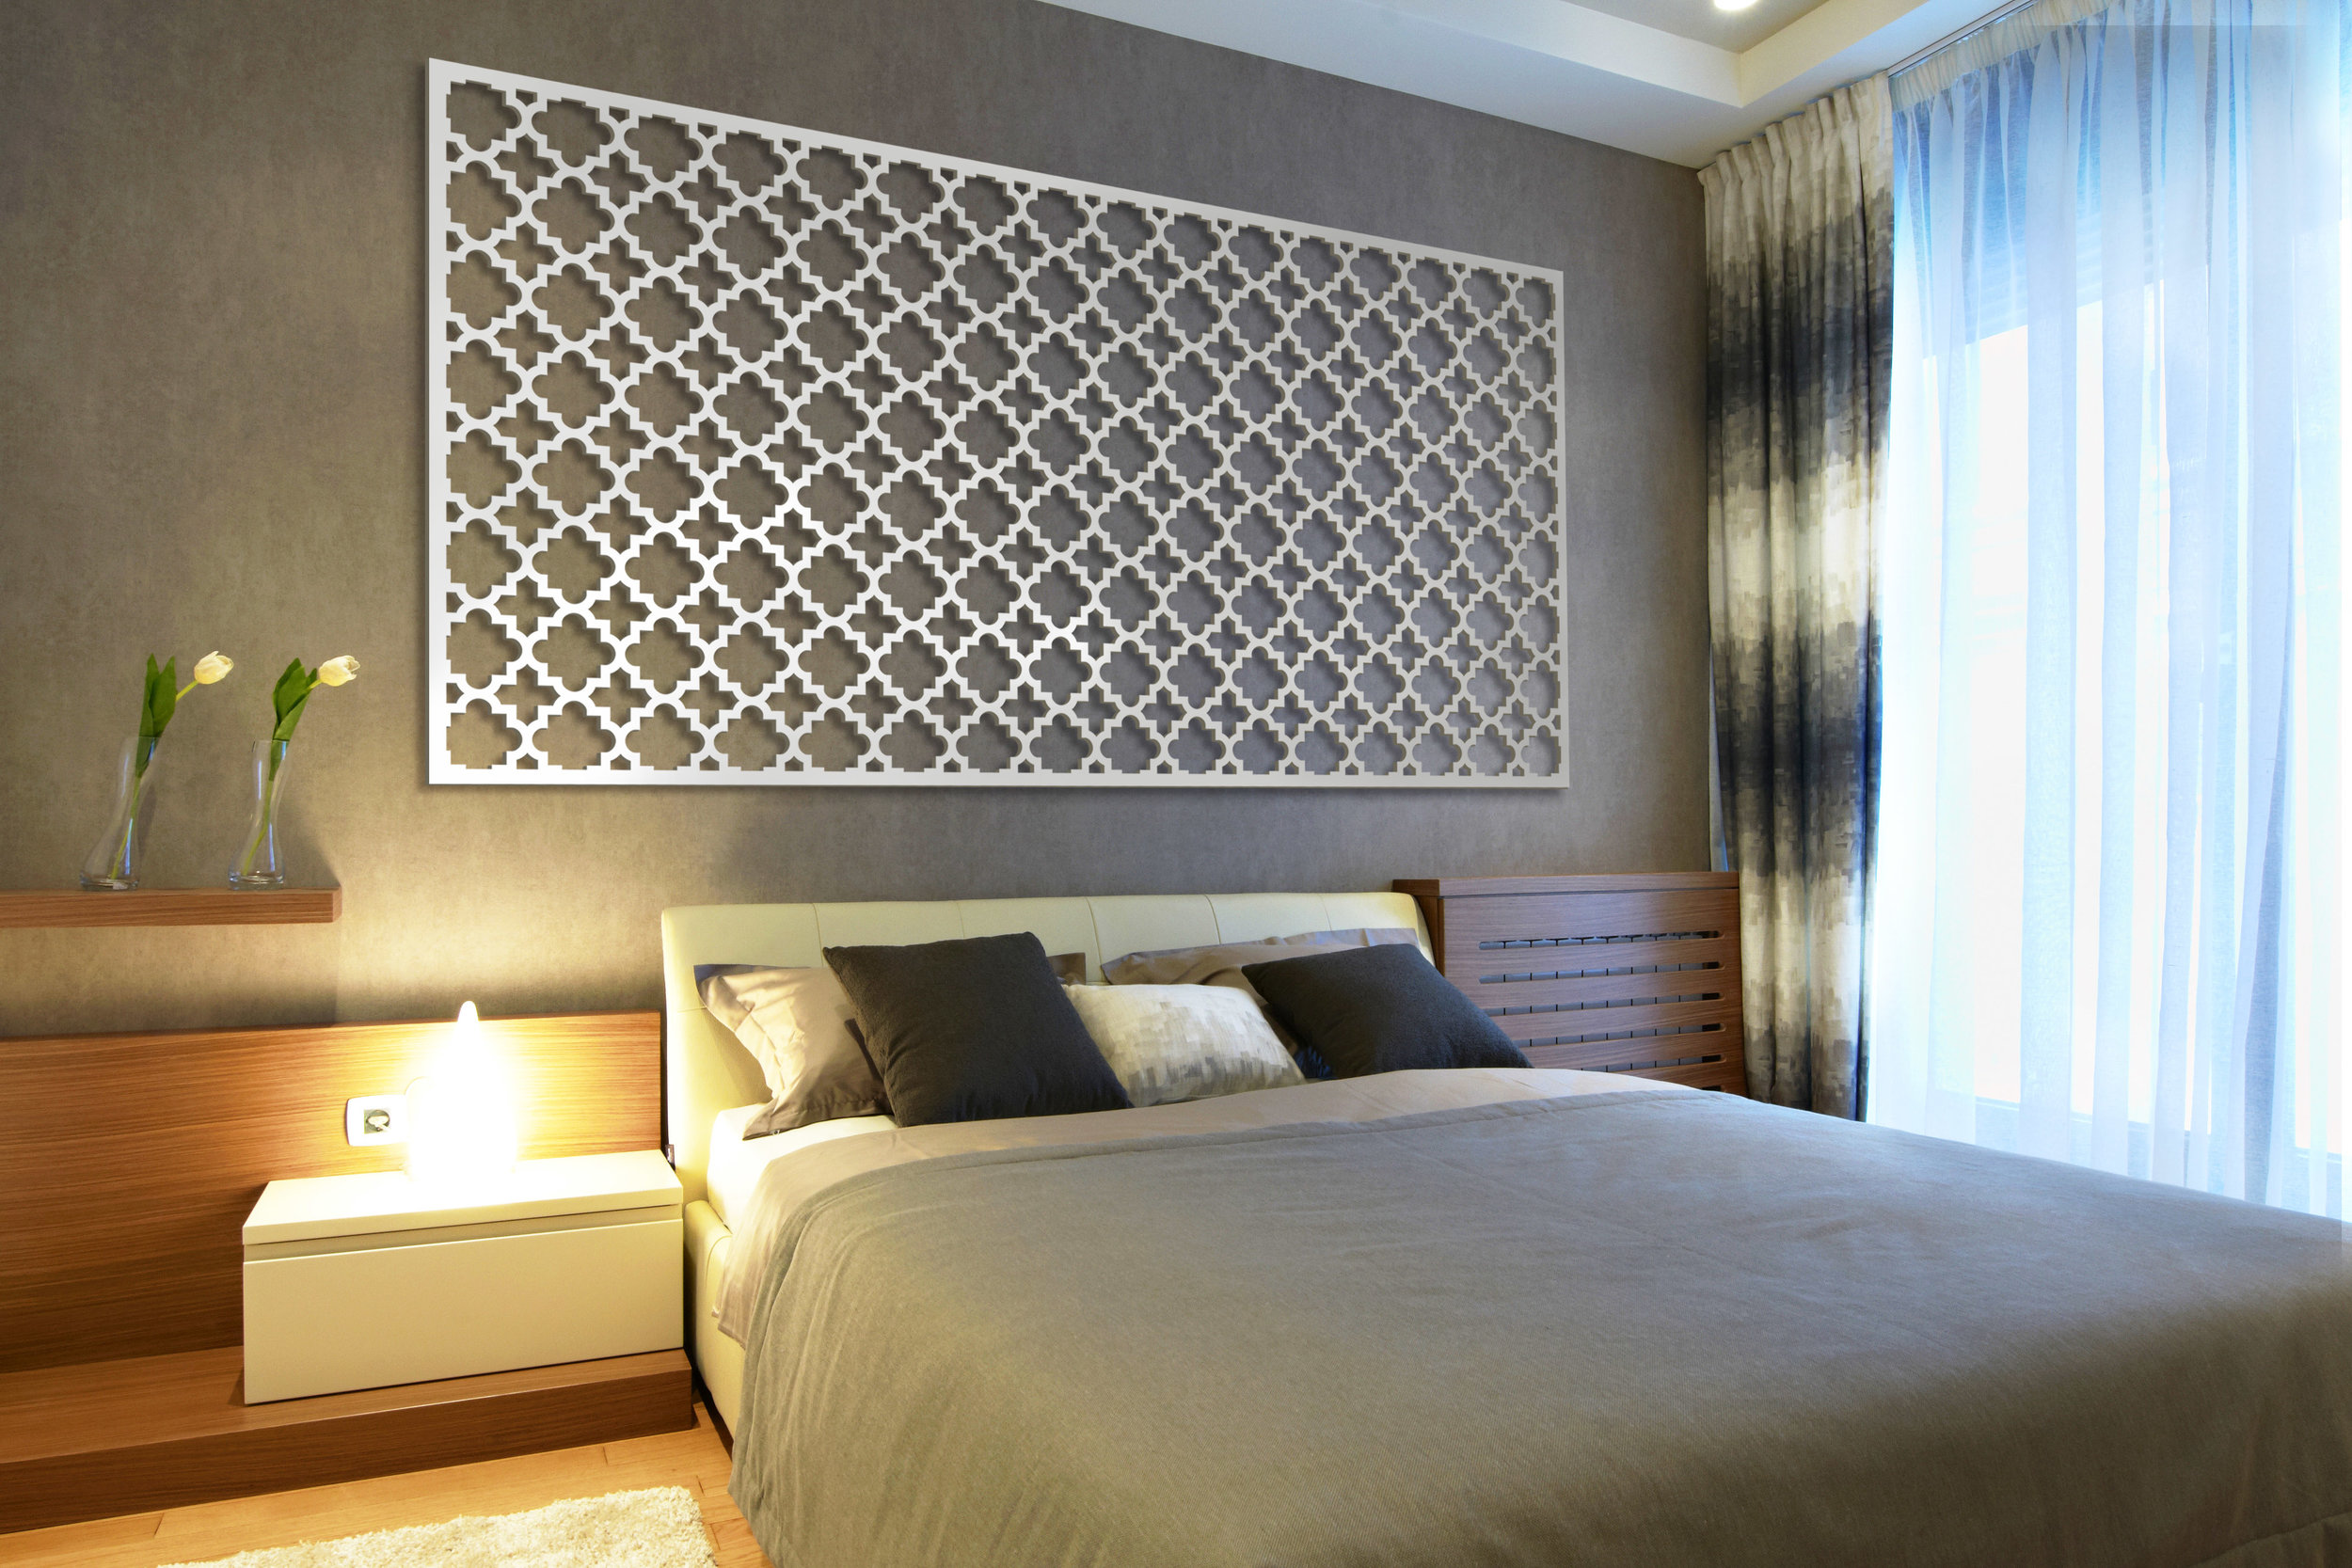 arabesque 3 hotel room off white.jpg